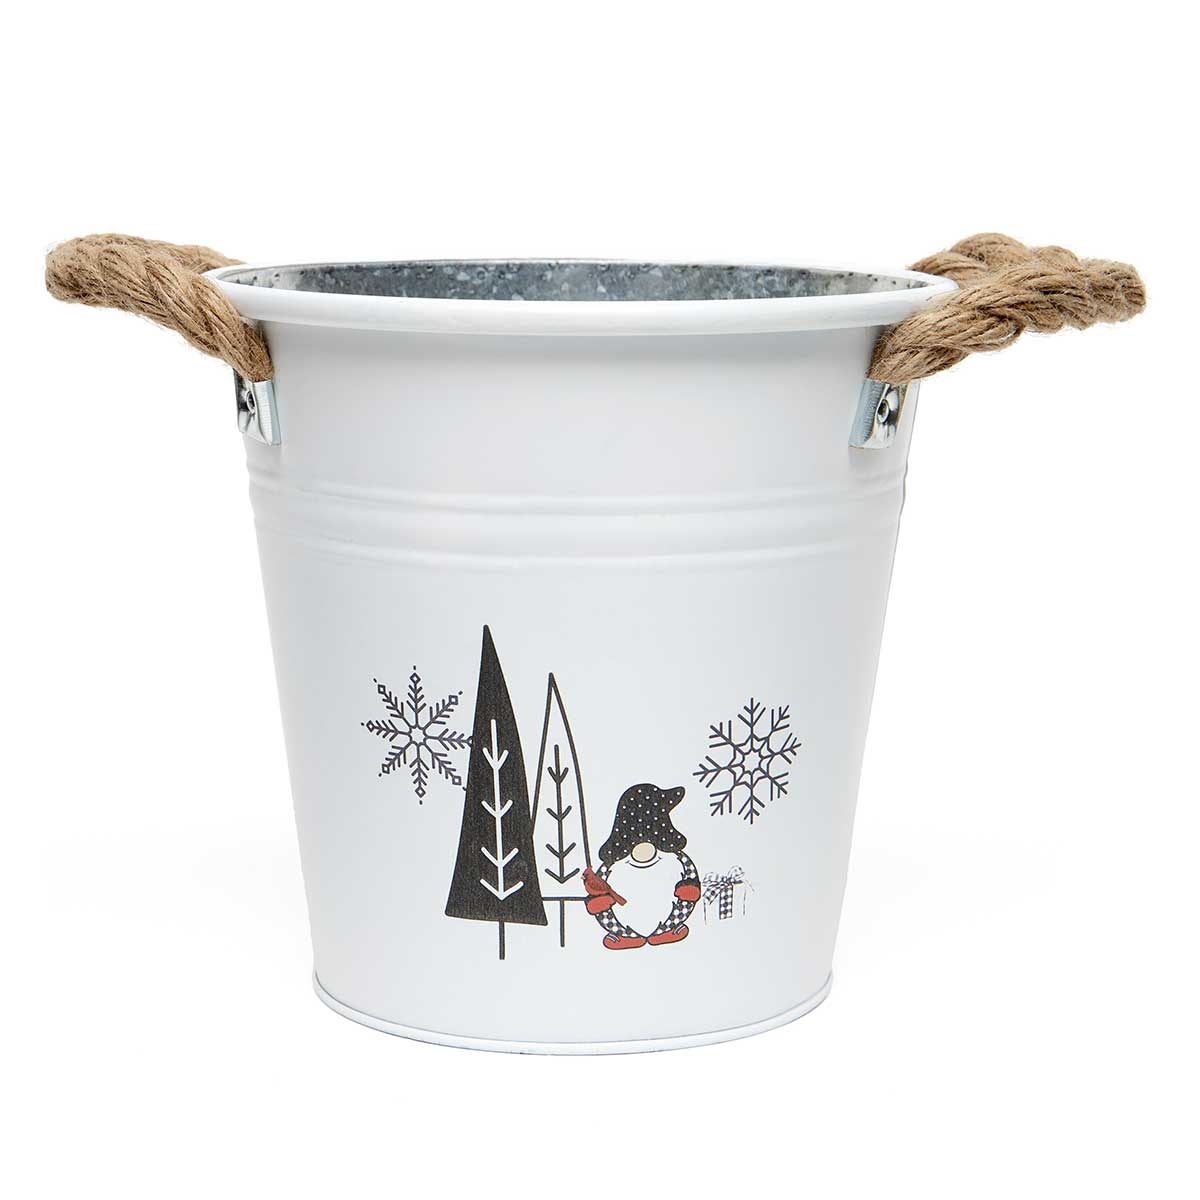 GNOME AND TREES METAL BUCKET WHITE/BLACK WITH